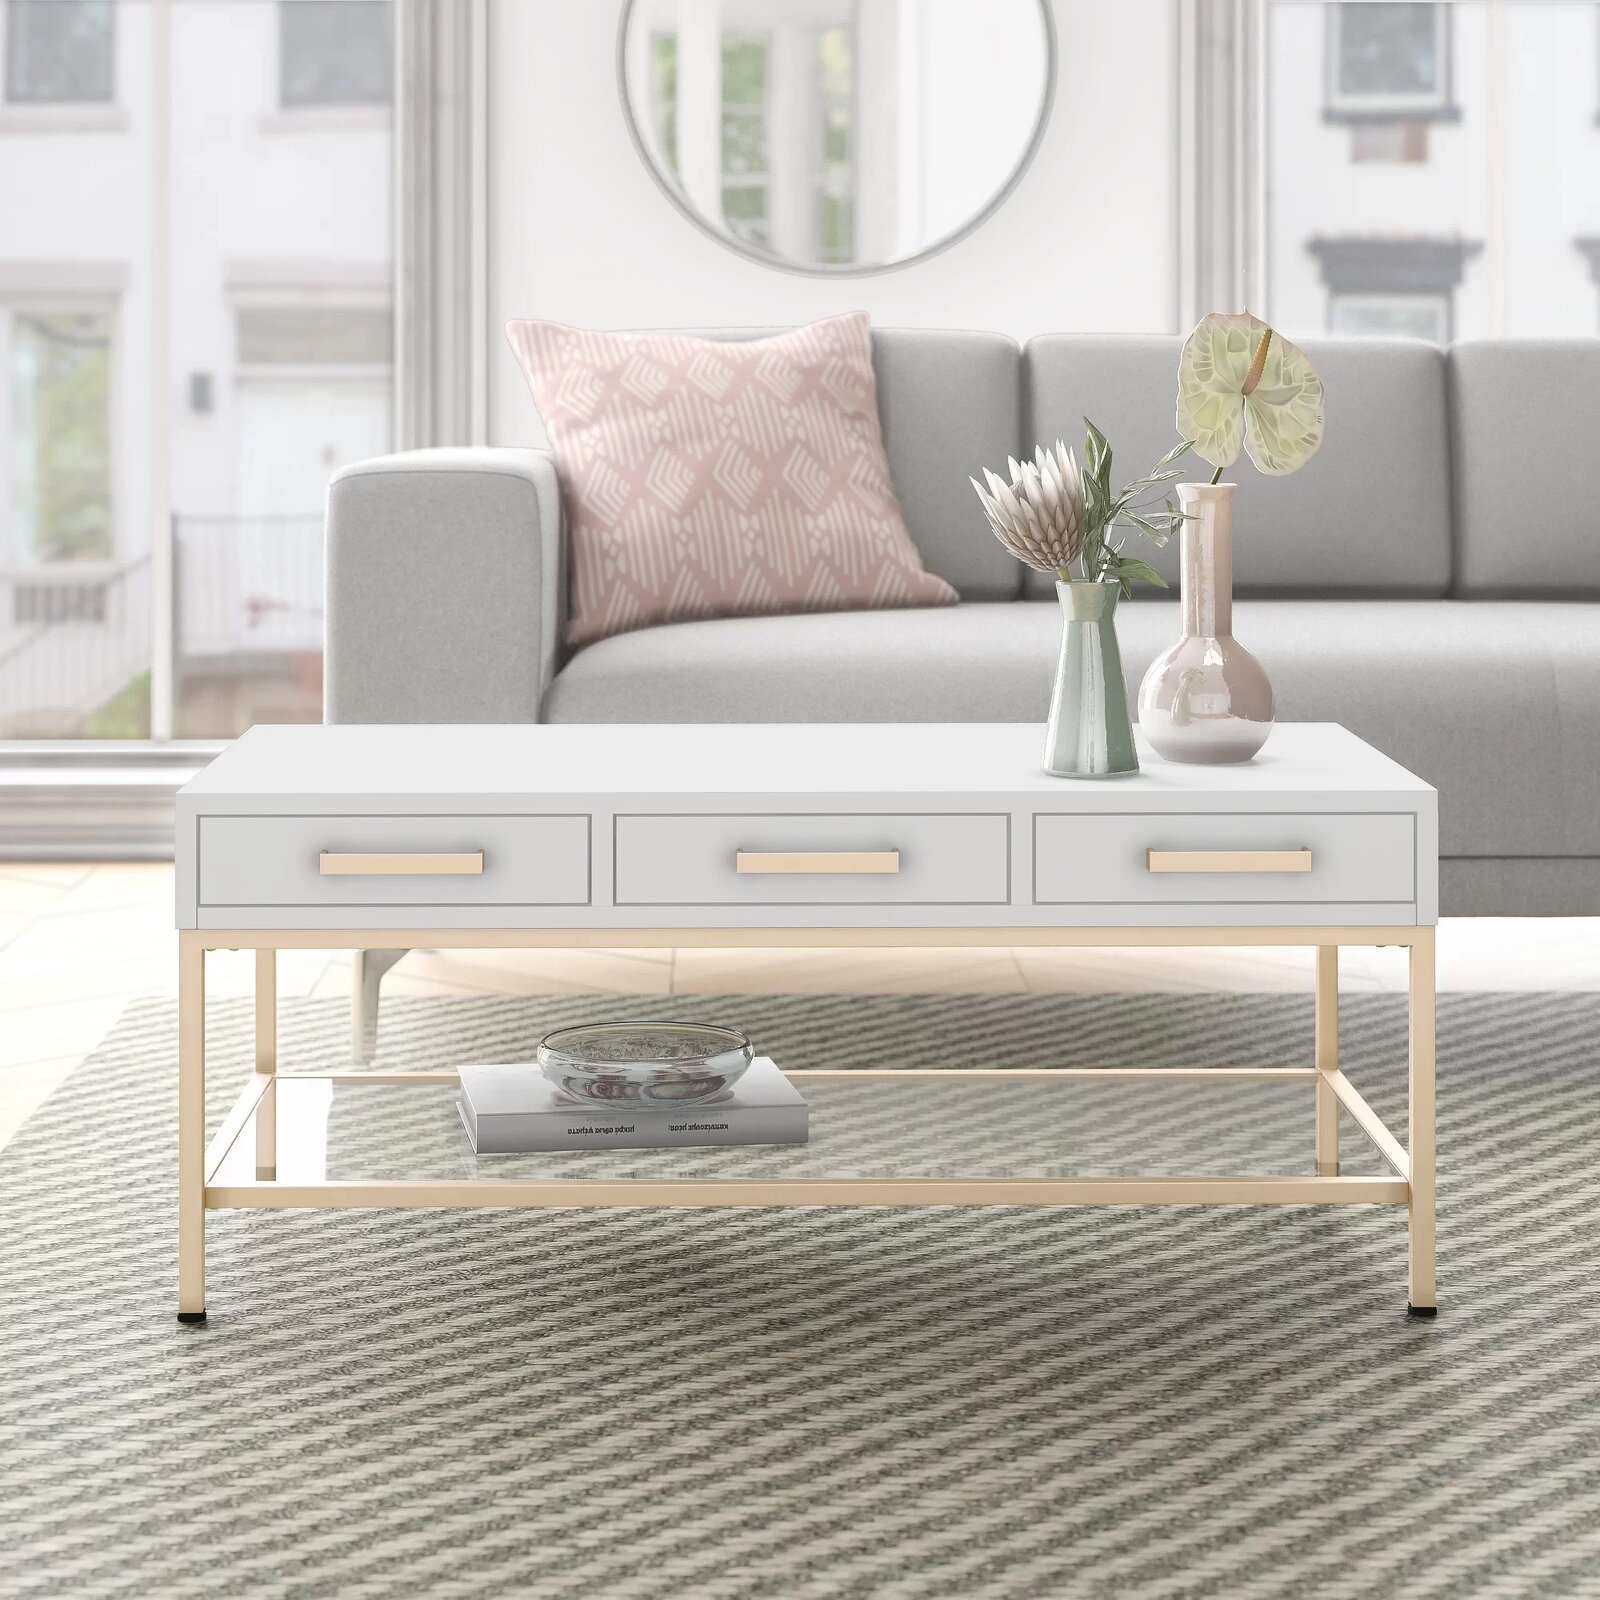 sophisticated-white-coffee-table-with-drawers-gold-base-glass-lower-shelf-gold-handles-cute-small-space-furniture-ideas